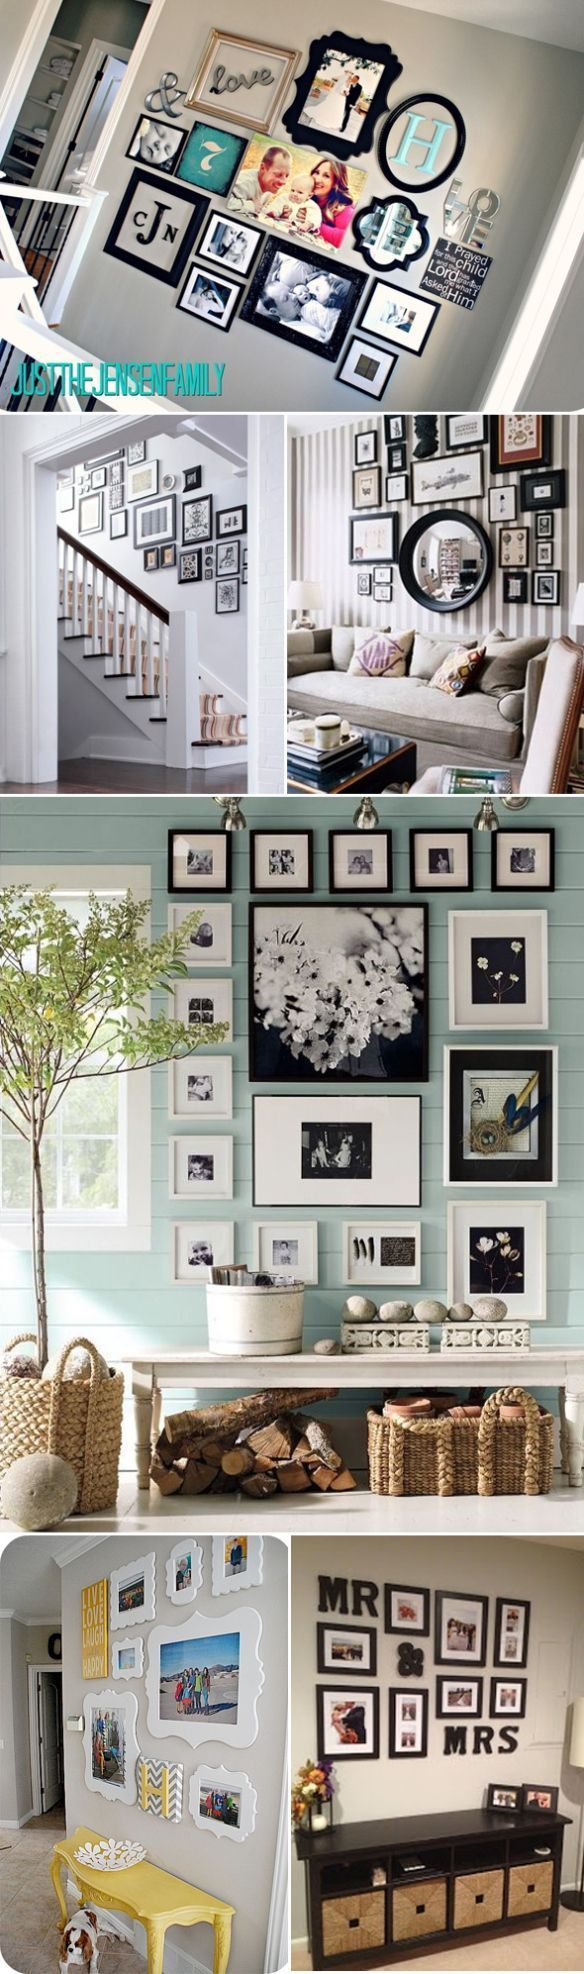 Great ideas for photo wall arrangements